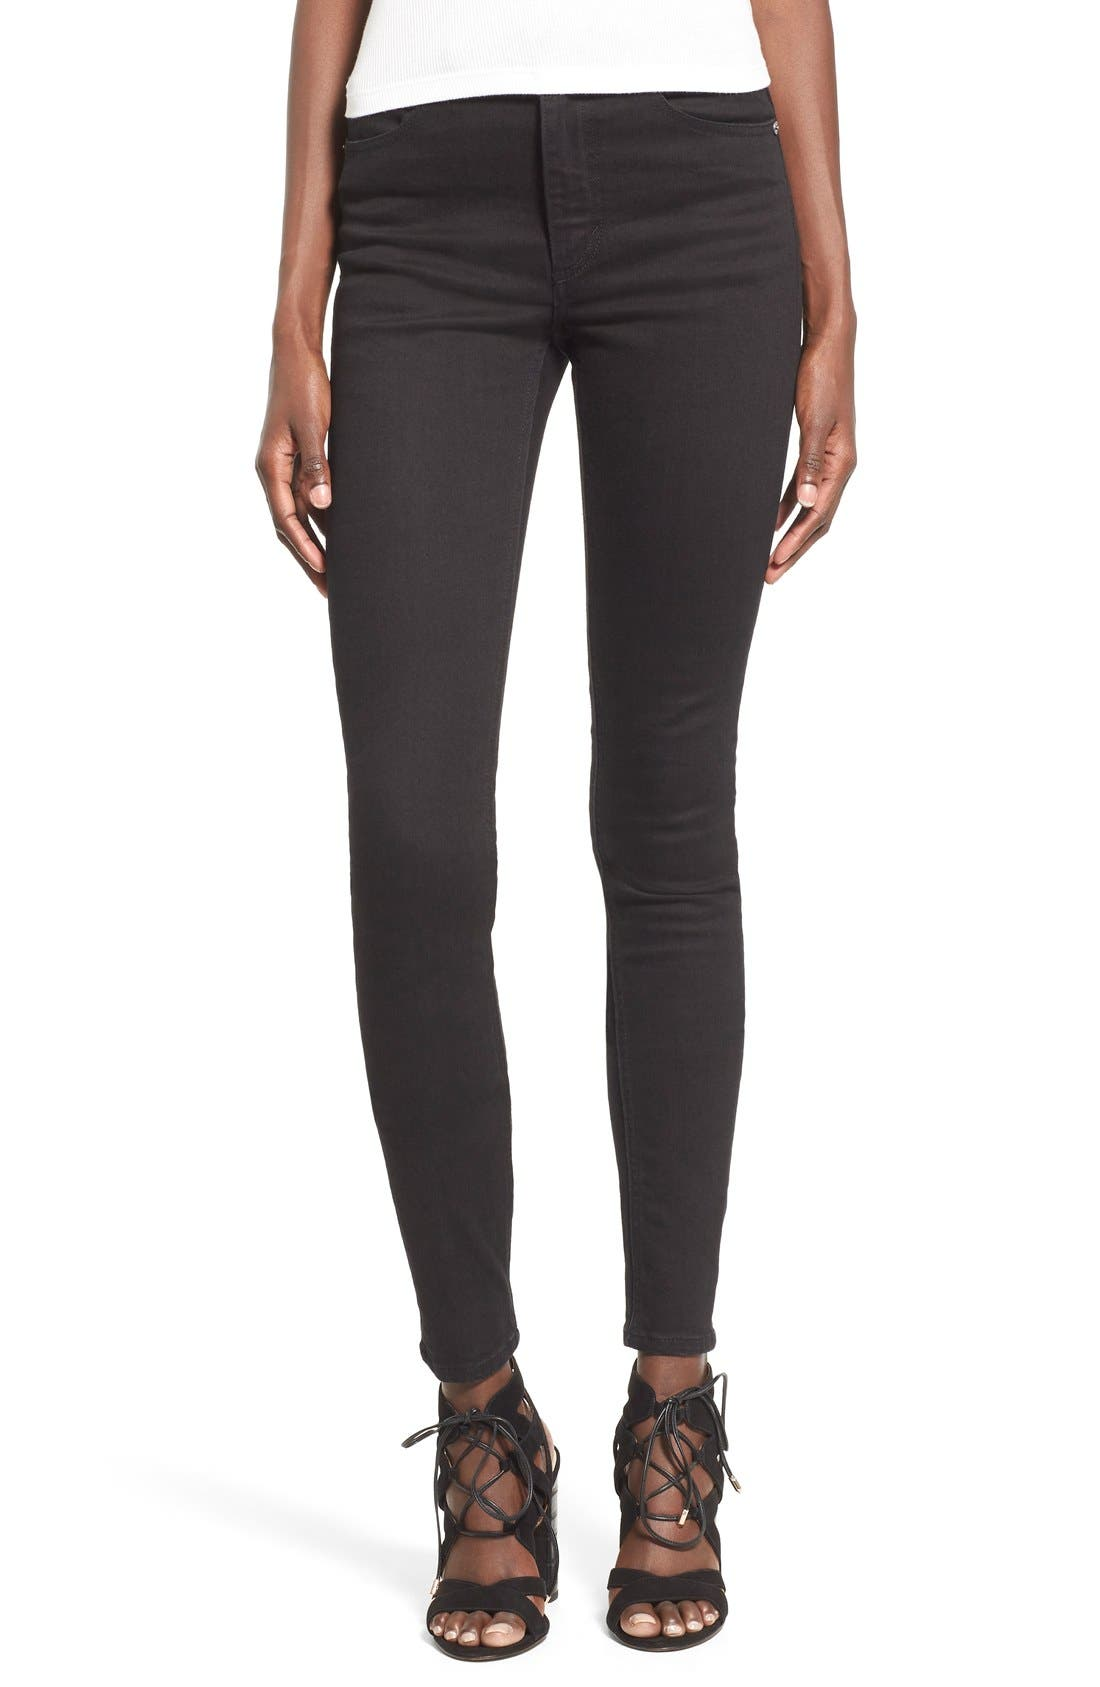 Alternate Image 1 Selected - Cheap Monday High Rise Skinny Jeans (New Black)